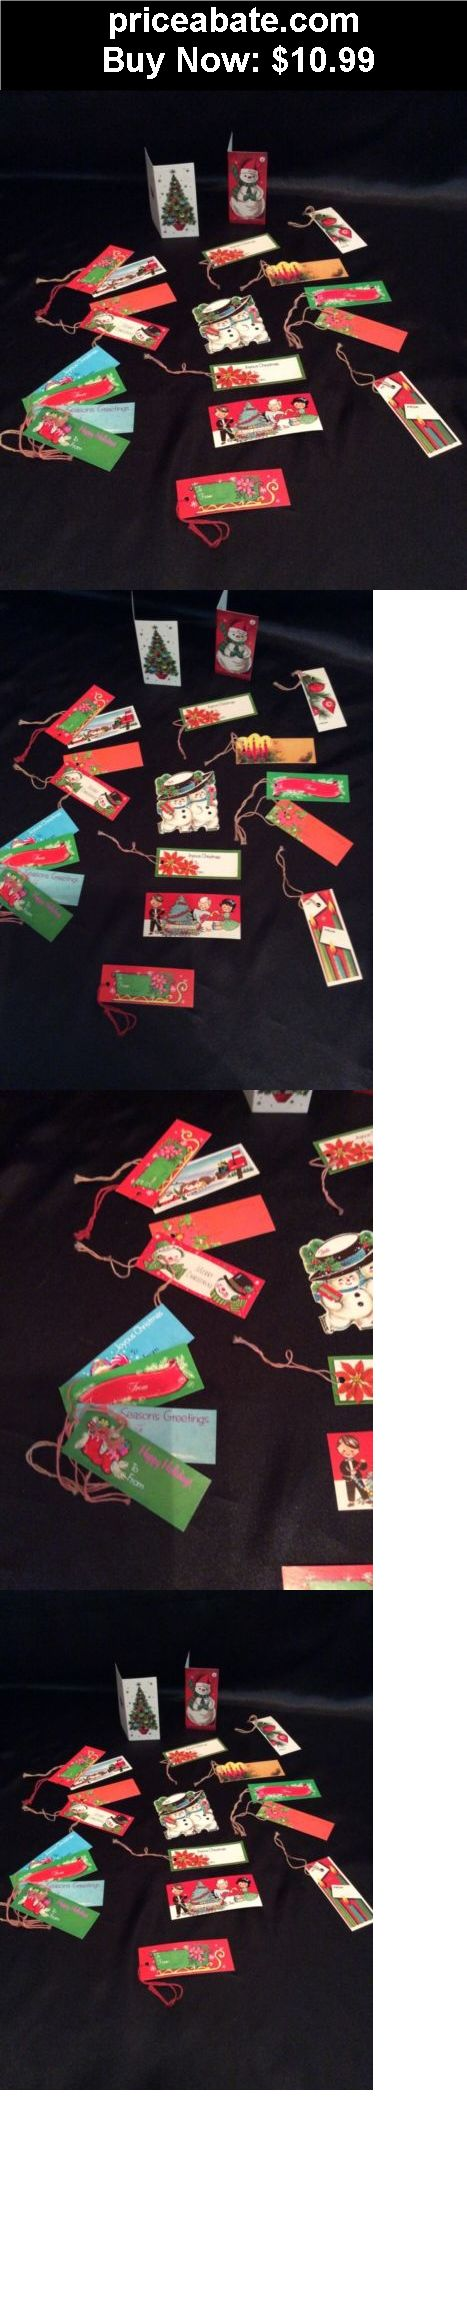 Collectibles: Vintage Christmas Gift Tags Unused Lot Of 20 Variety Of Tags Set 5 - BUY IT NOW ONLY $10.99